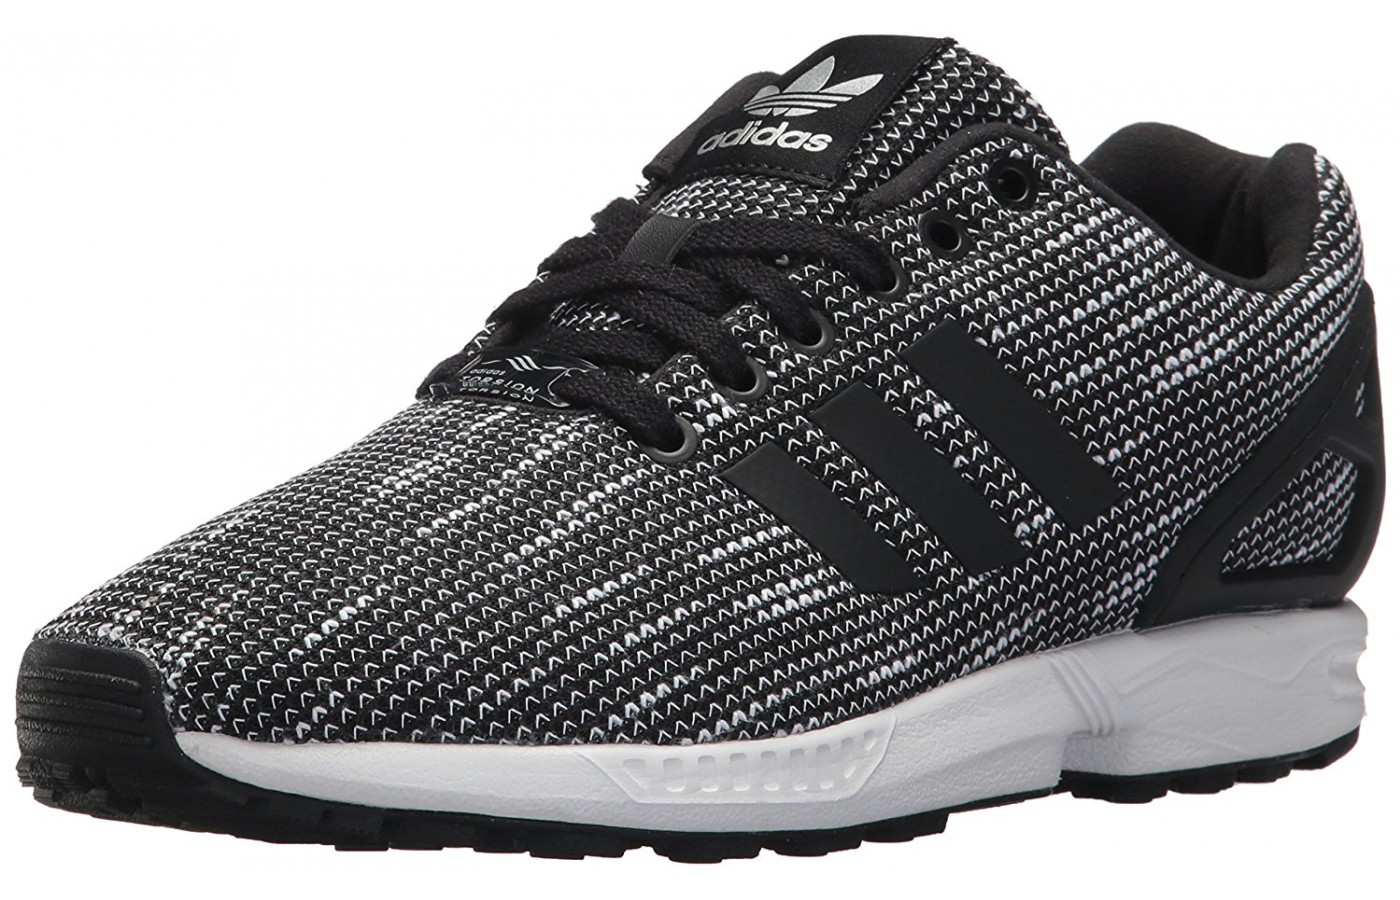 Adidas ZX Flux Reviewed & Tested for Performance